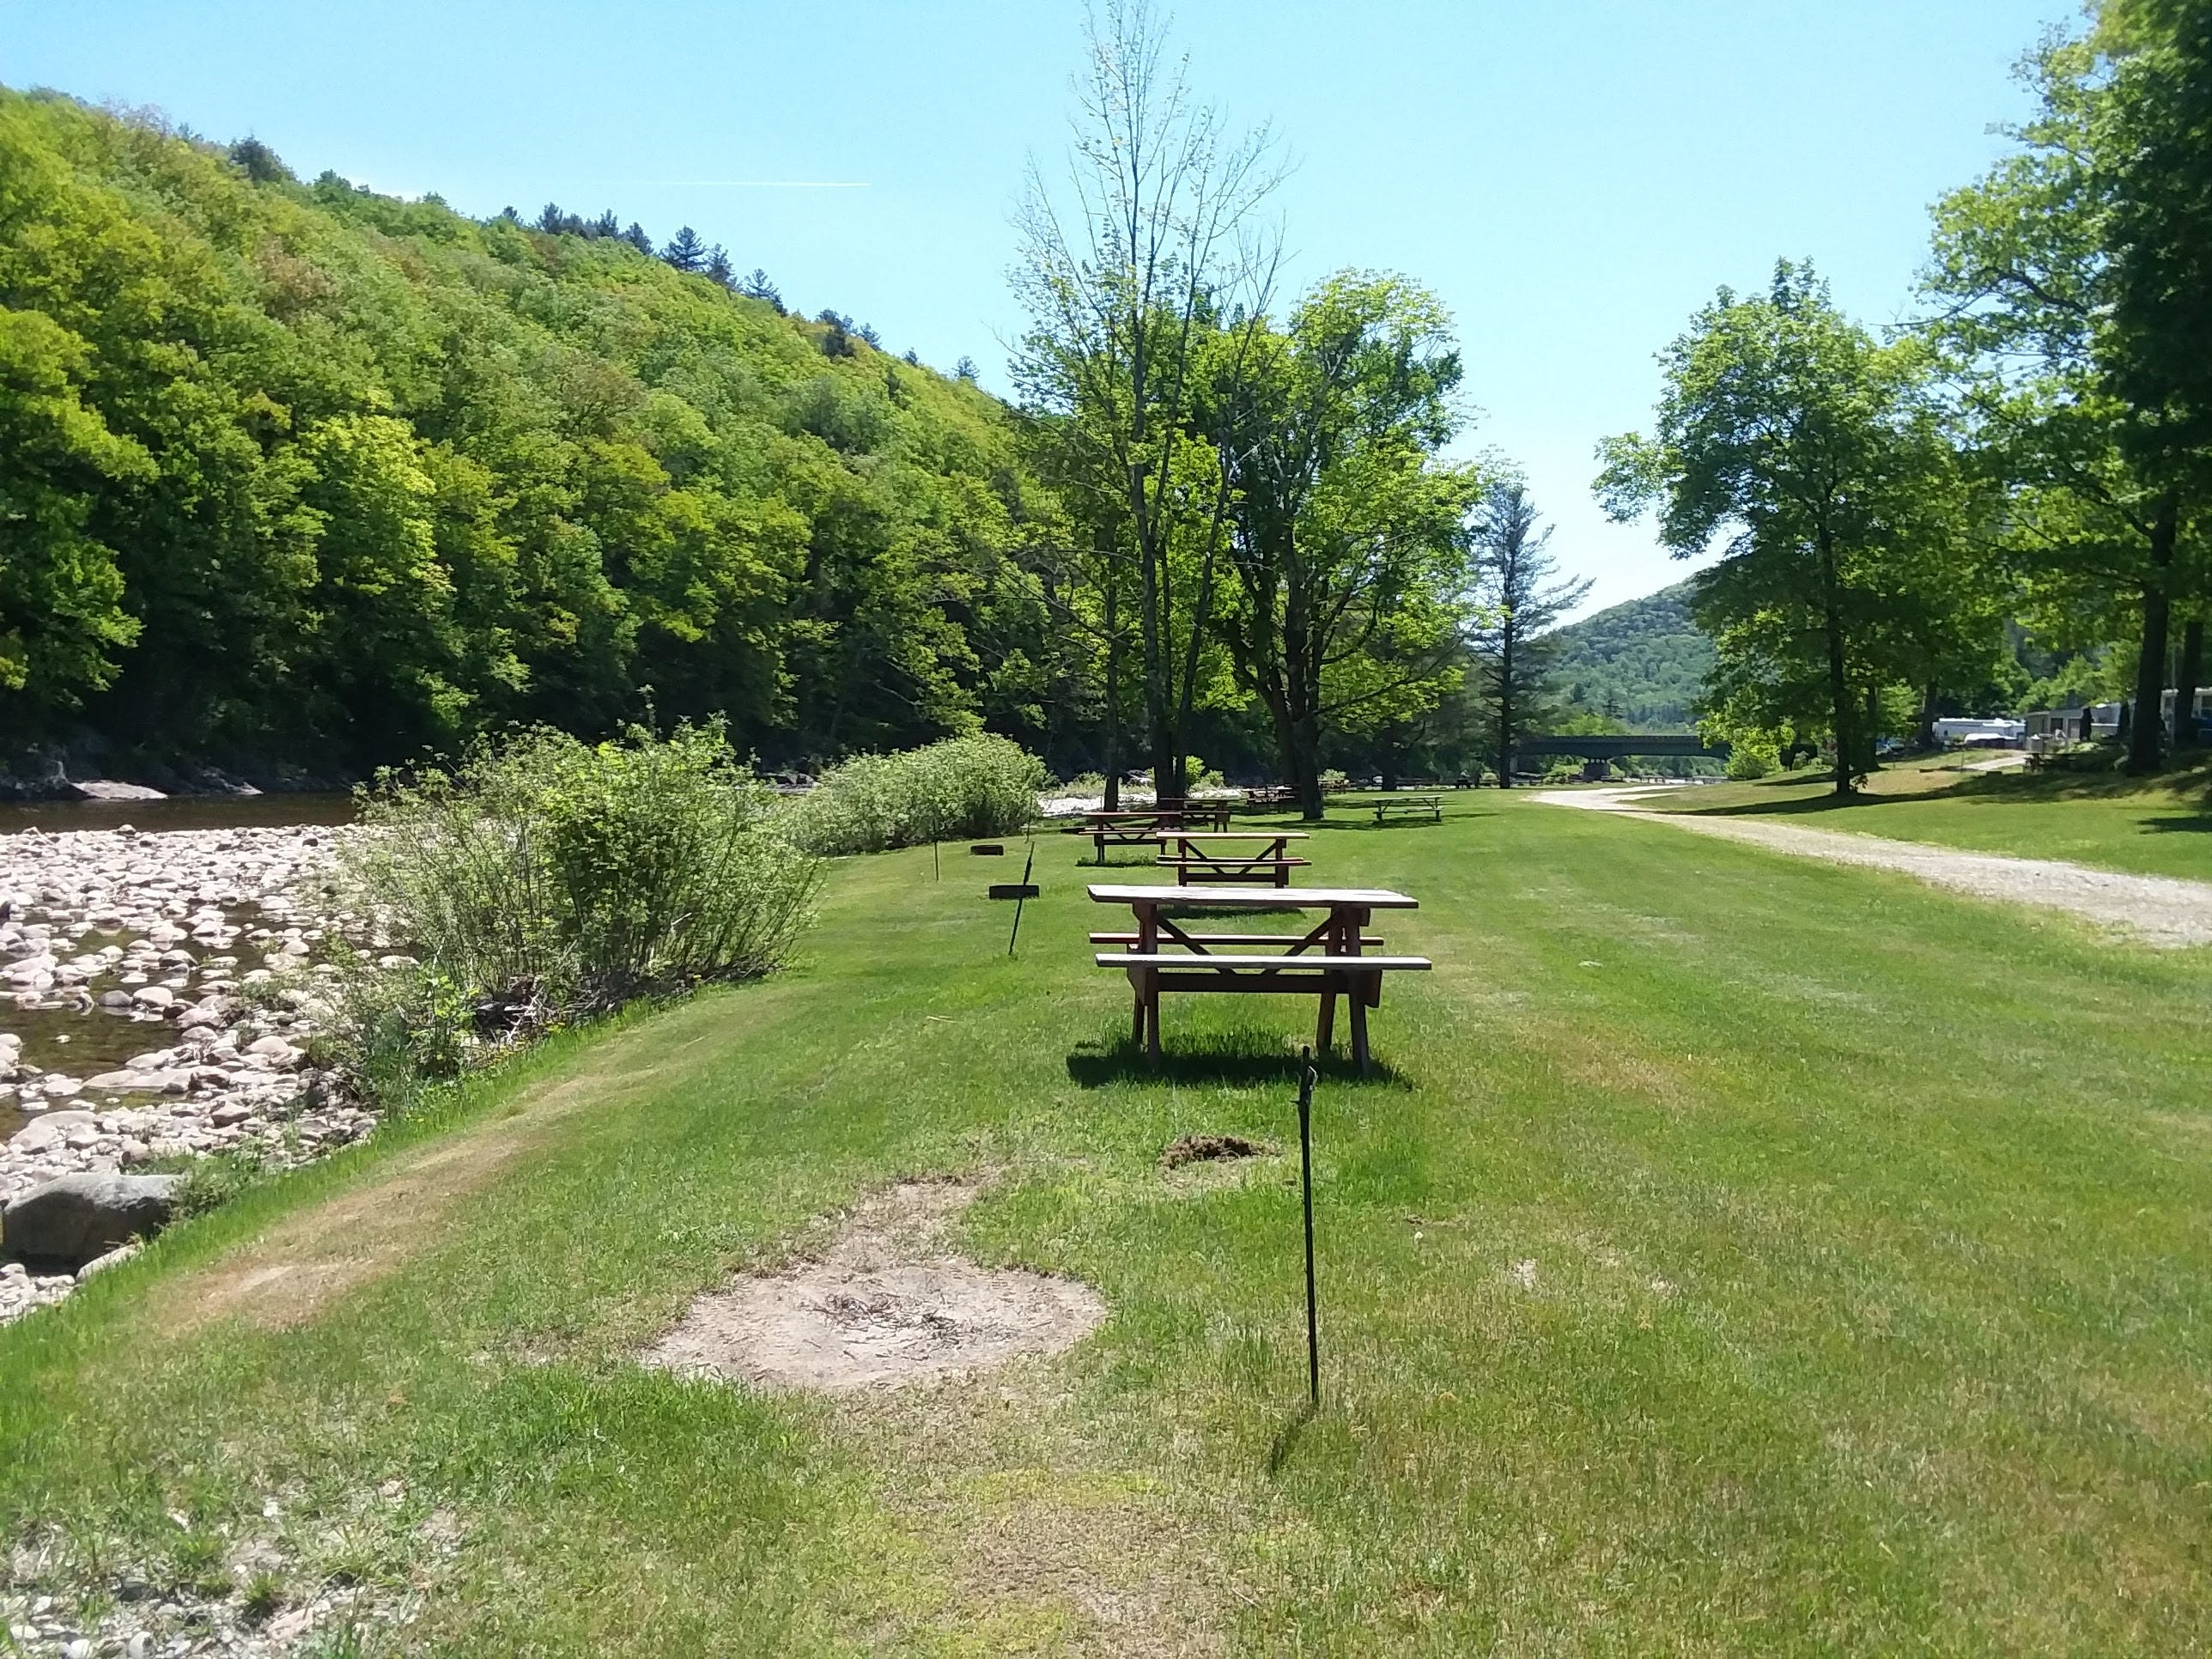 Mohawk Park Restaurant and Campground   The Dyrt